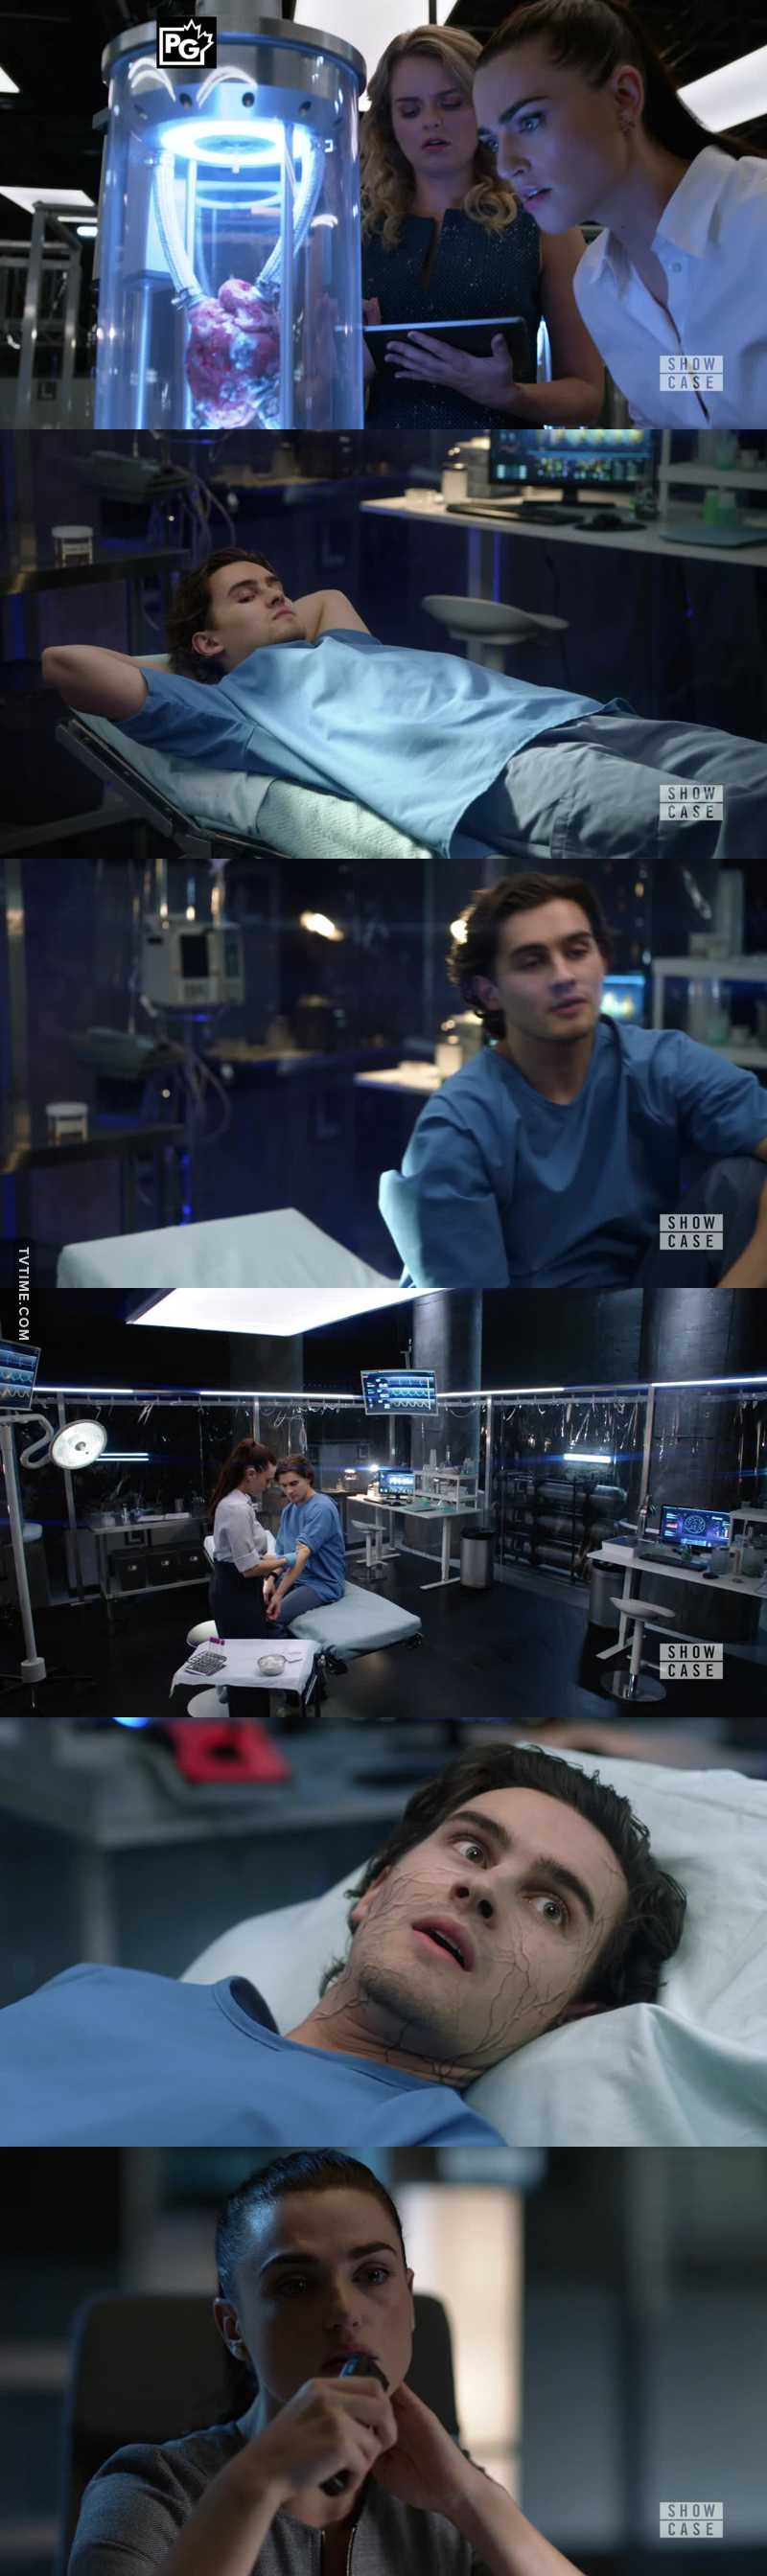 Am i the only one who thinks Adam will come back to life and the experiment worked but was just delayed? Remember they thought the heart experiment was a failure until they tried to burn it and realized it was invincible l...his heart may have stopped but he may very well be alive and invincible.